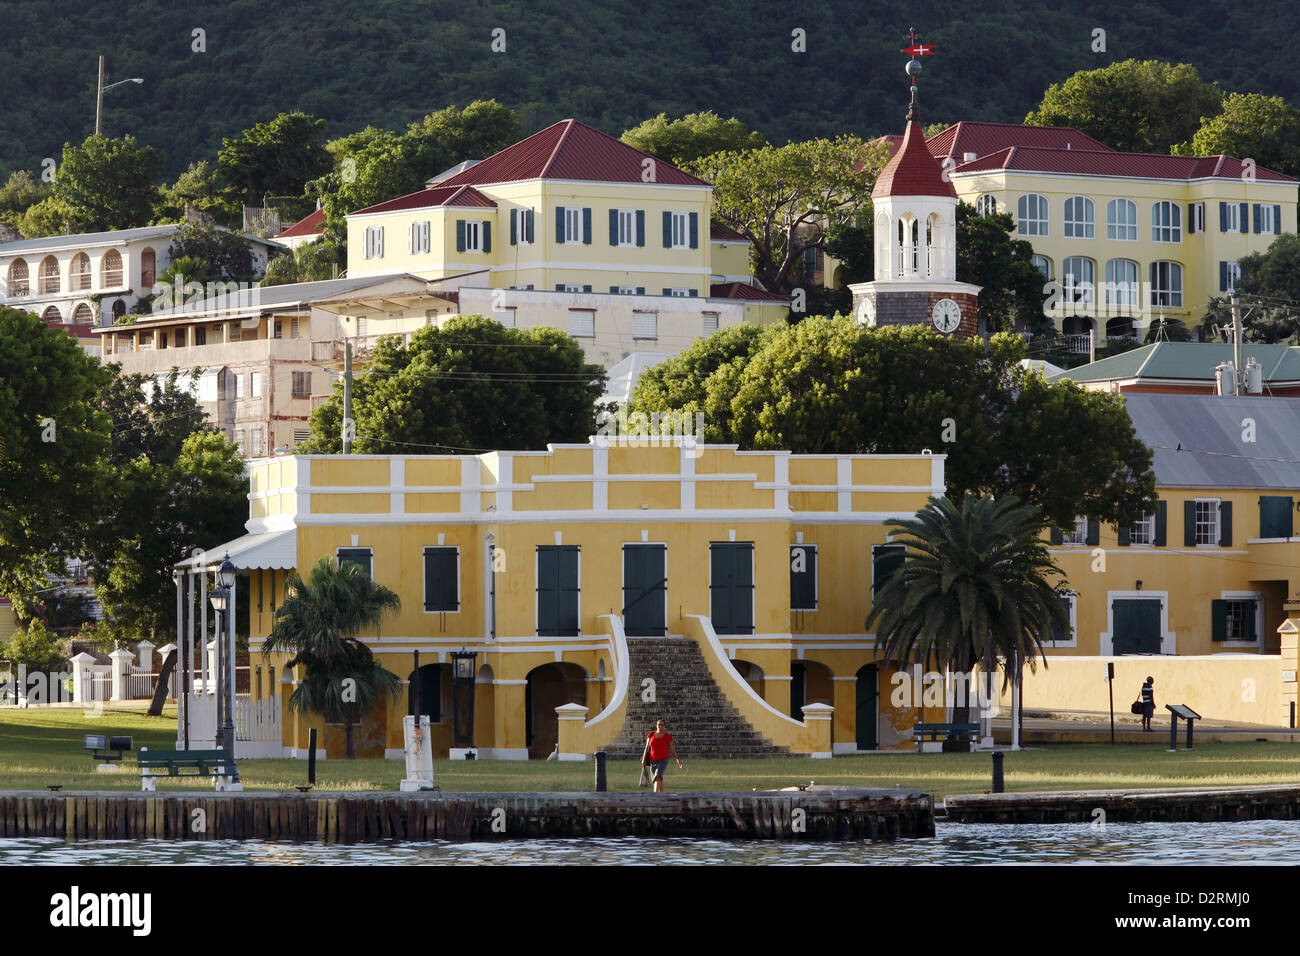 Old Danish Customs House, Christiansted, St. Croix, US .